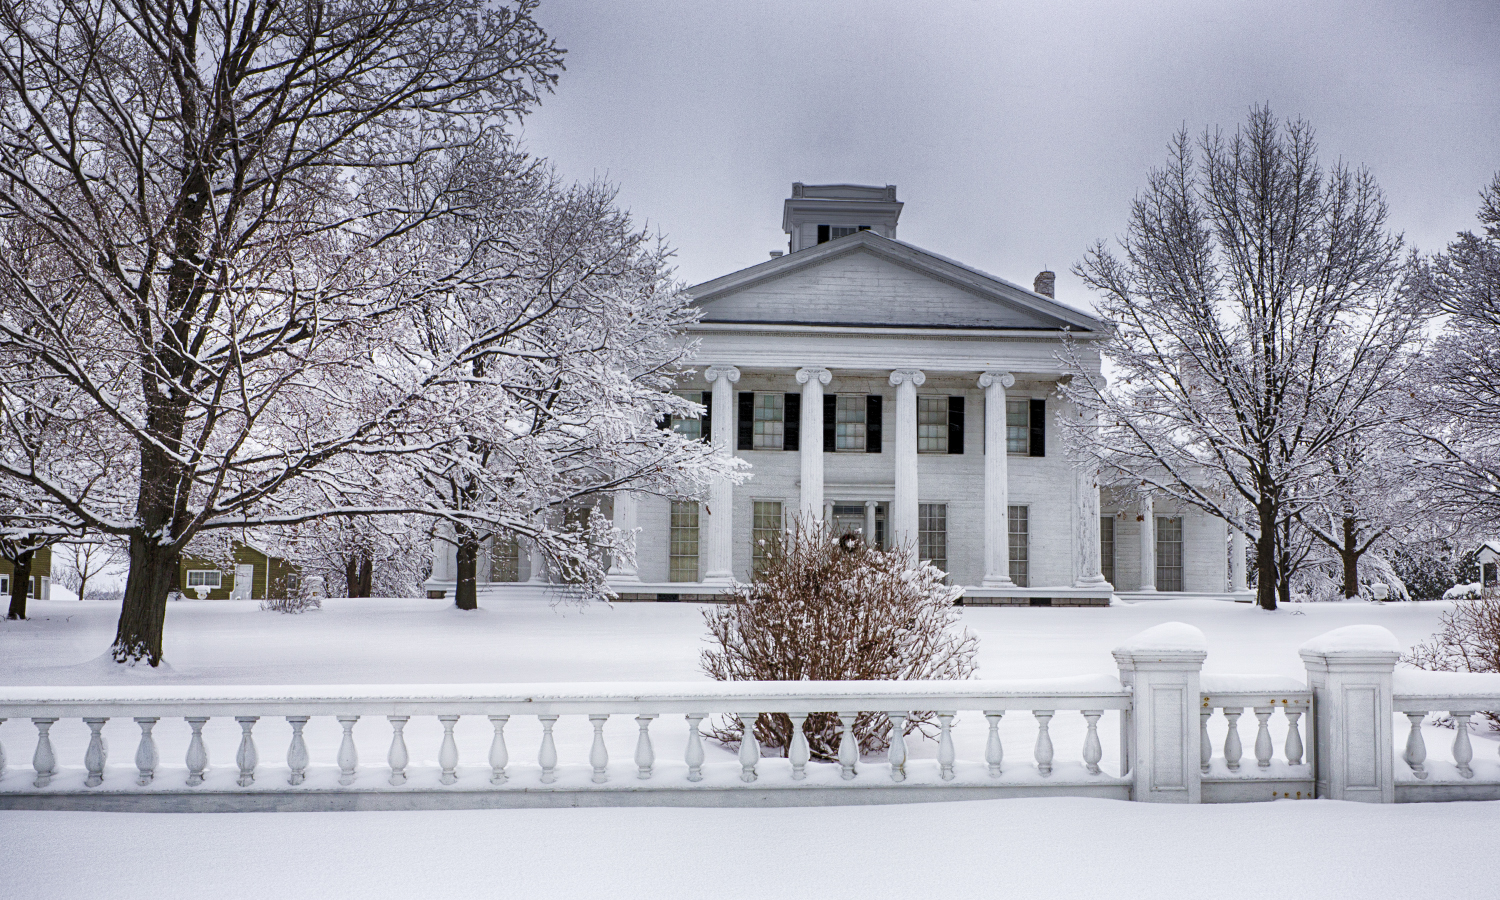 Rose Hill Mansion stands blanketed in snow in Fayette, N.Y.